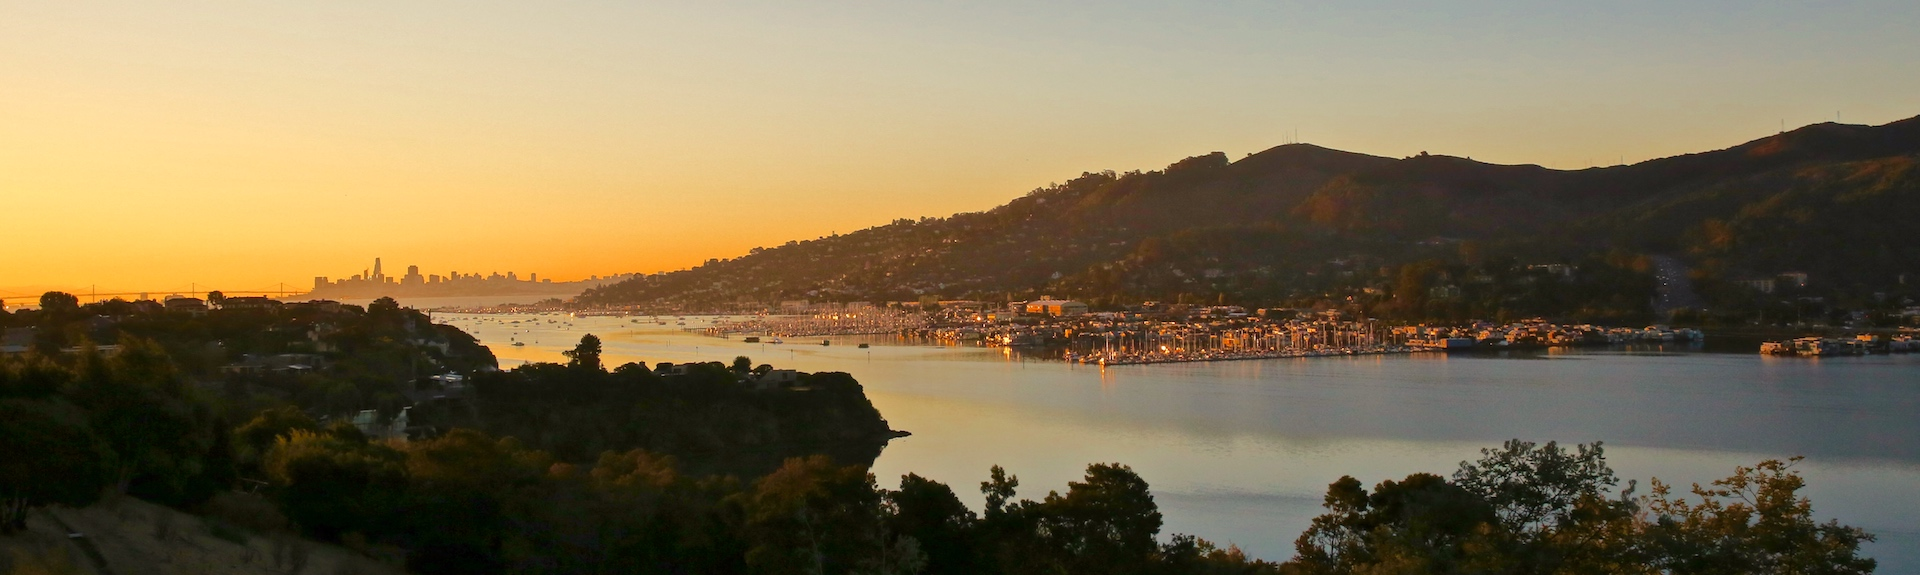 Sausalito at Dawn from Strawberry